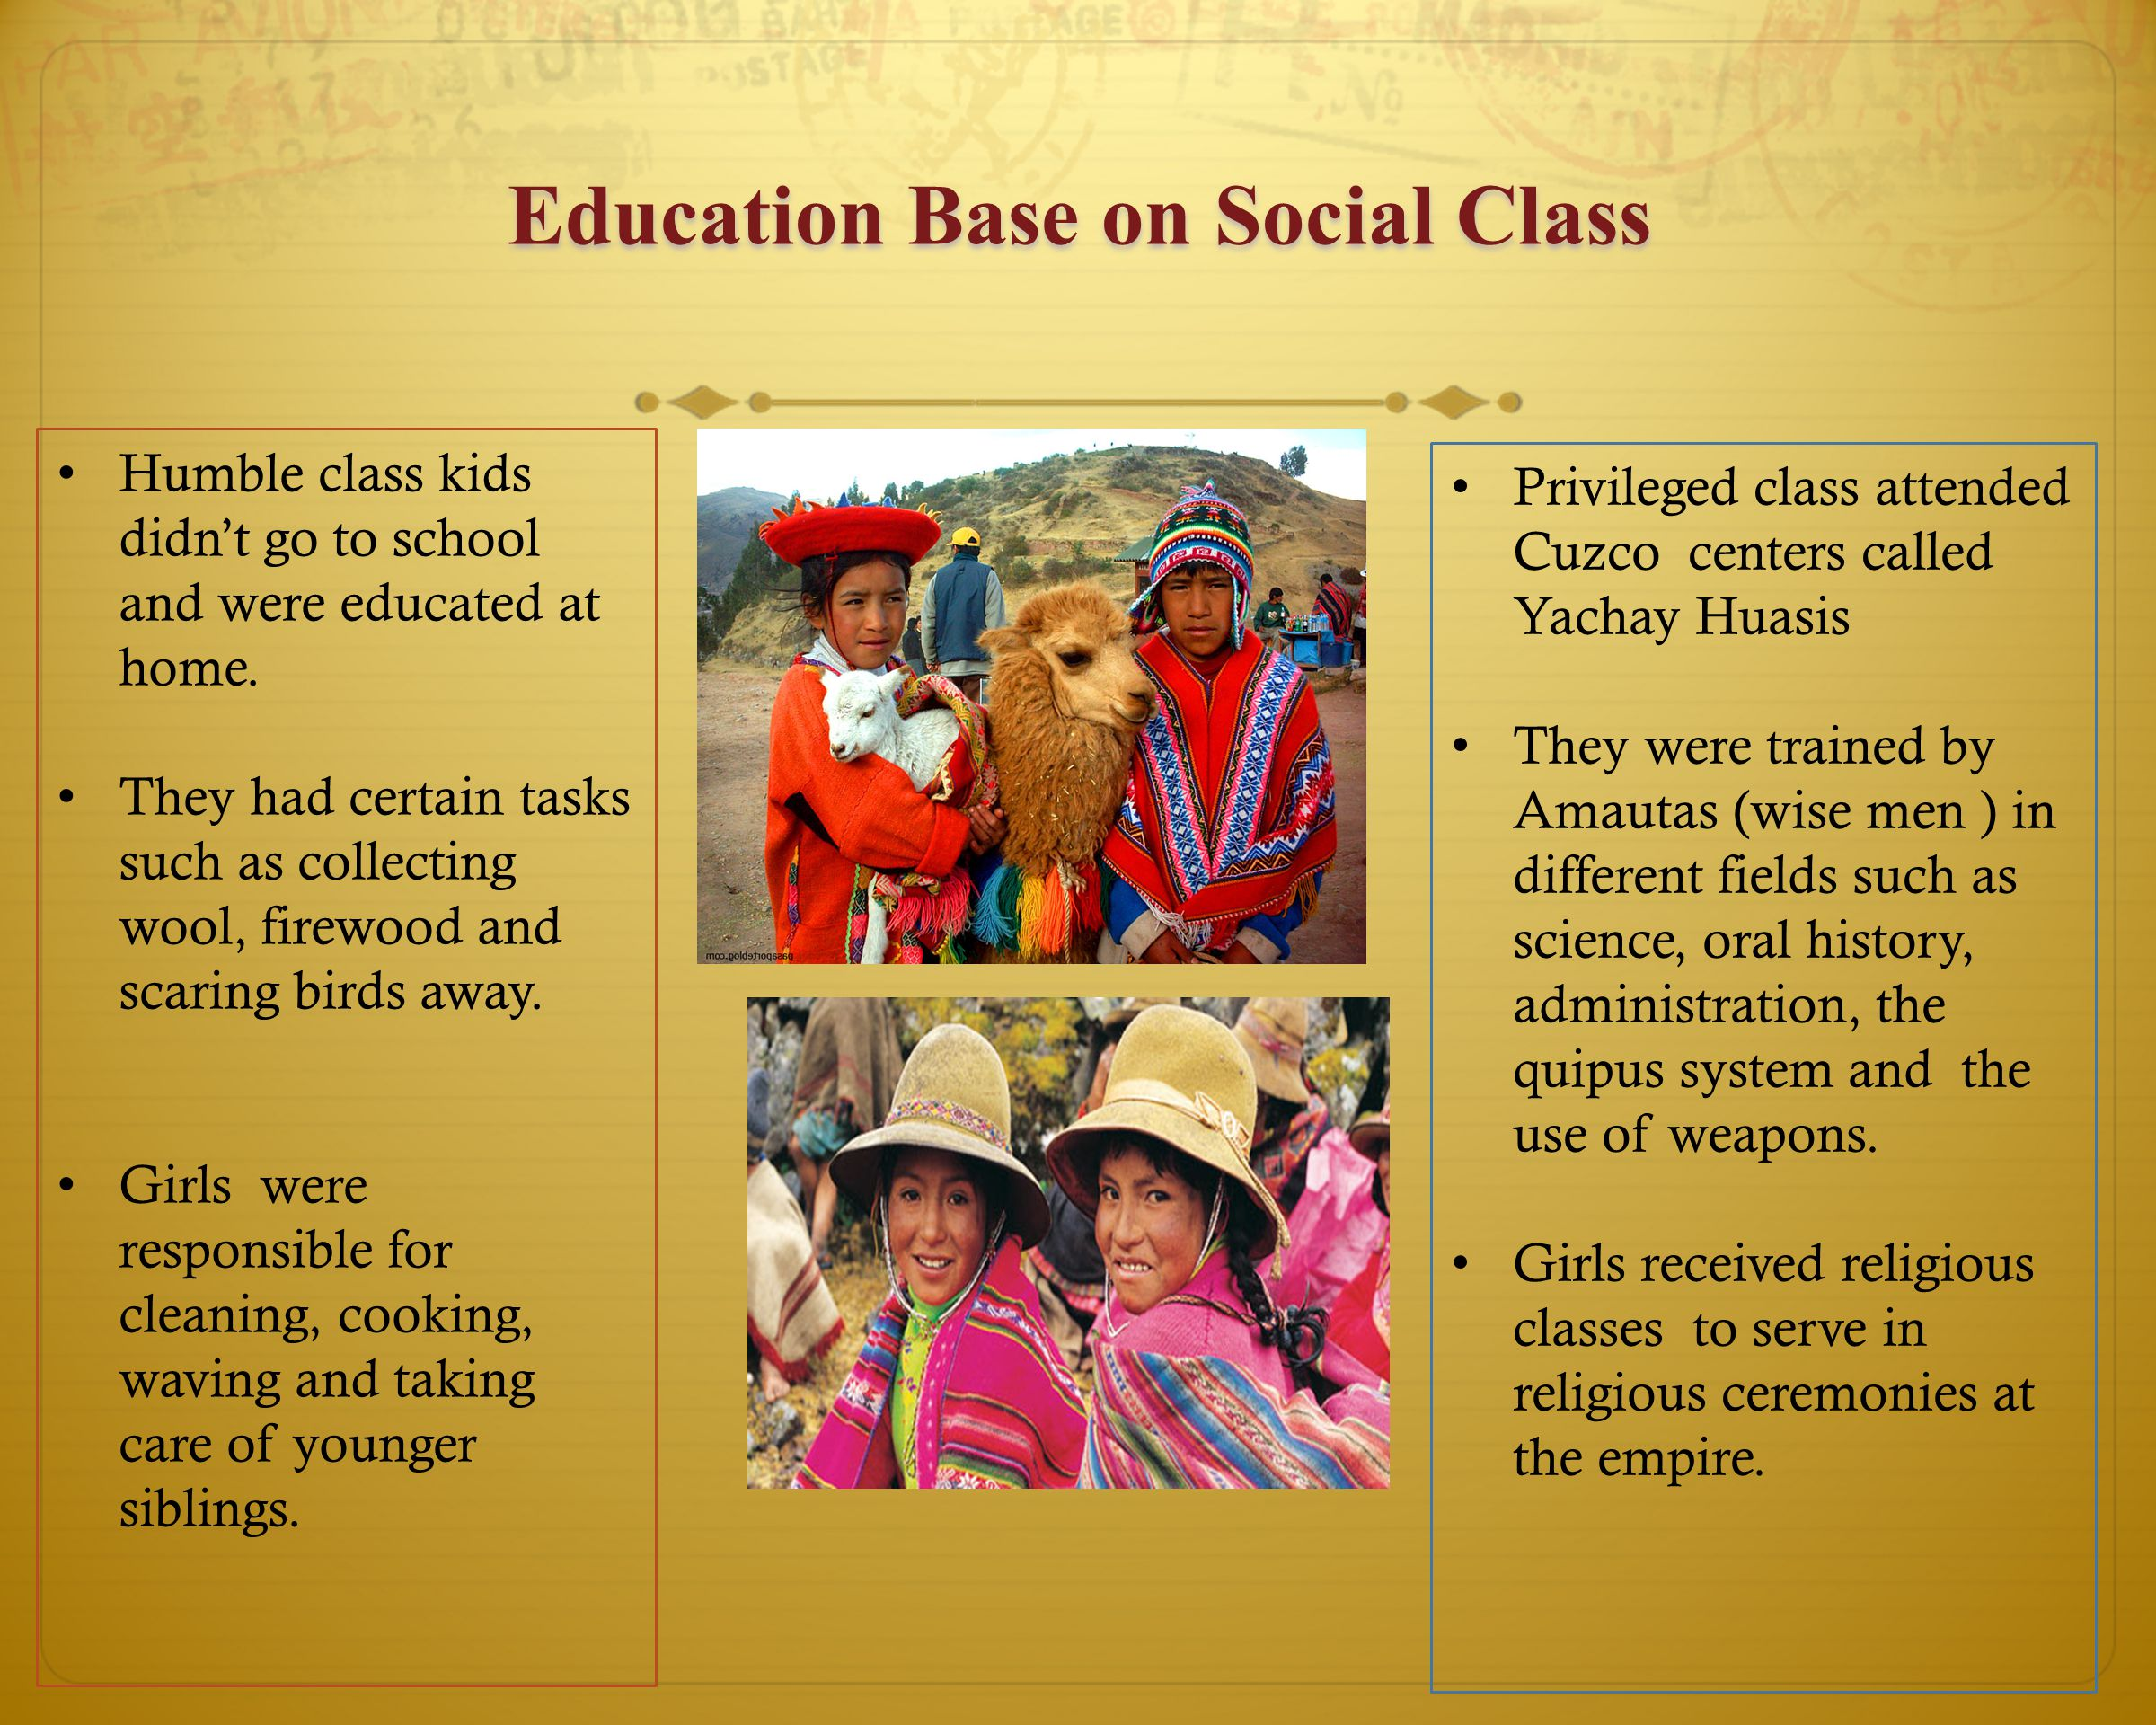 Education Base on Social Class Humble class kids didn't go to school and were educated at home.